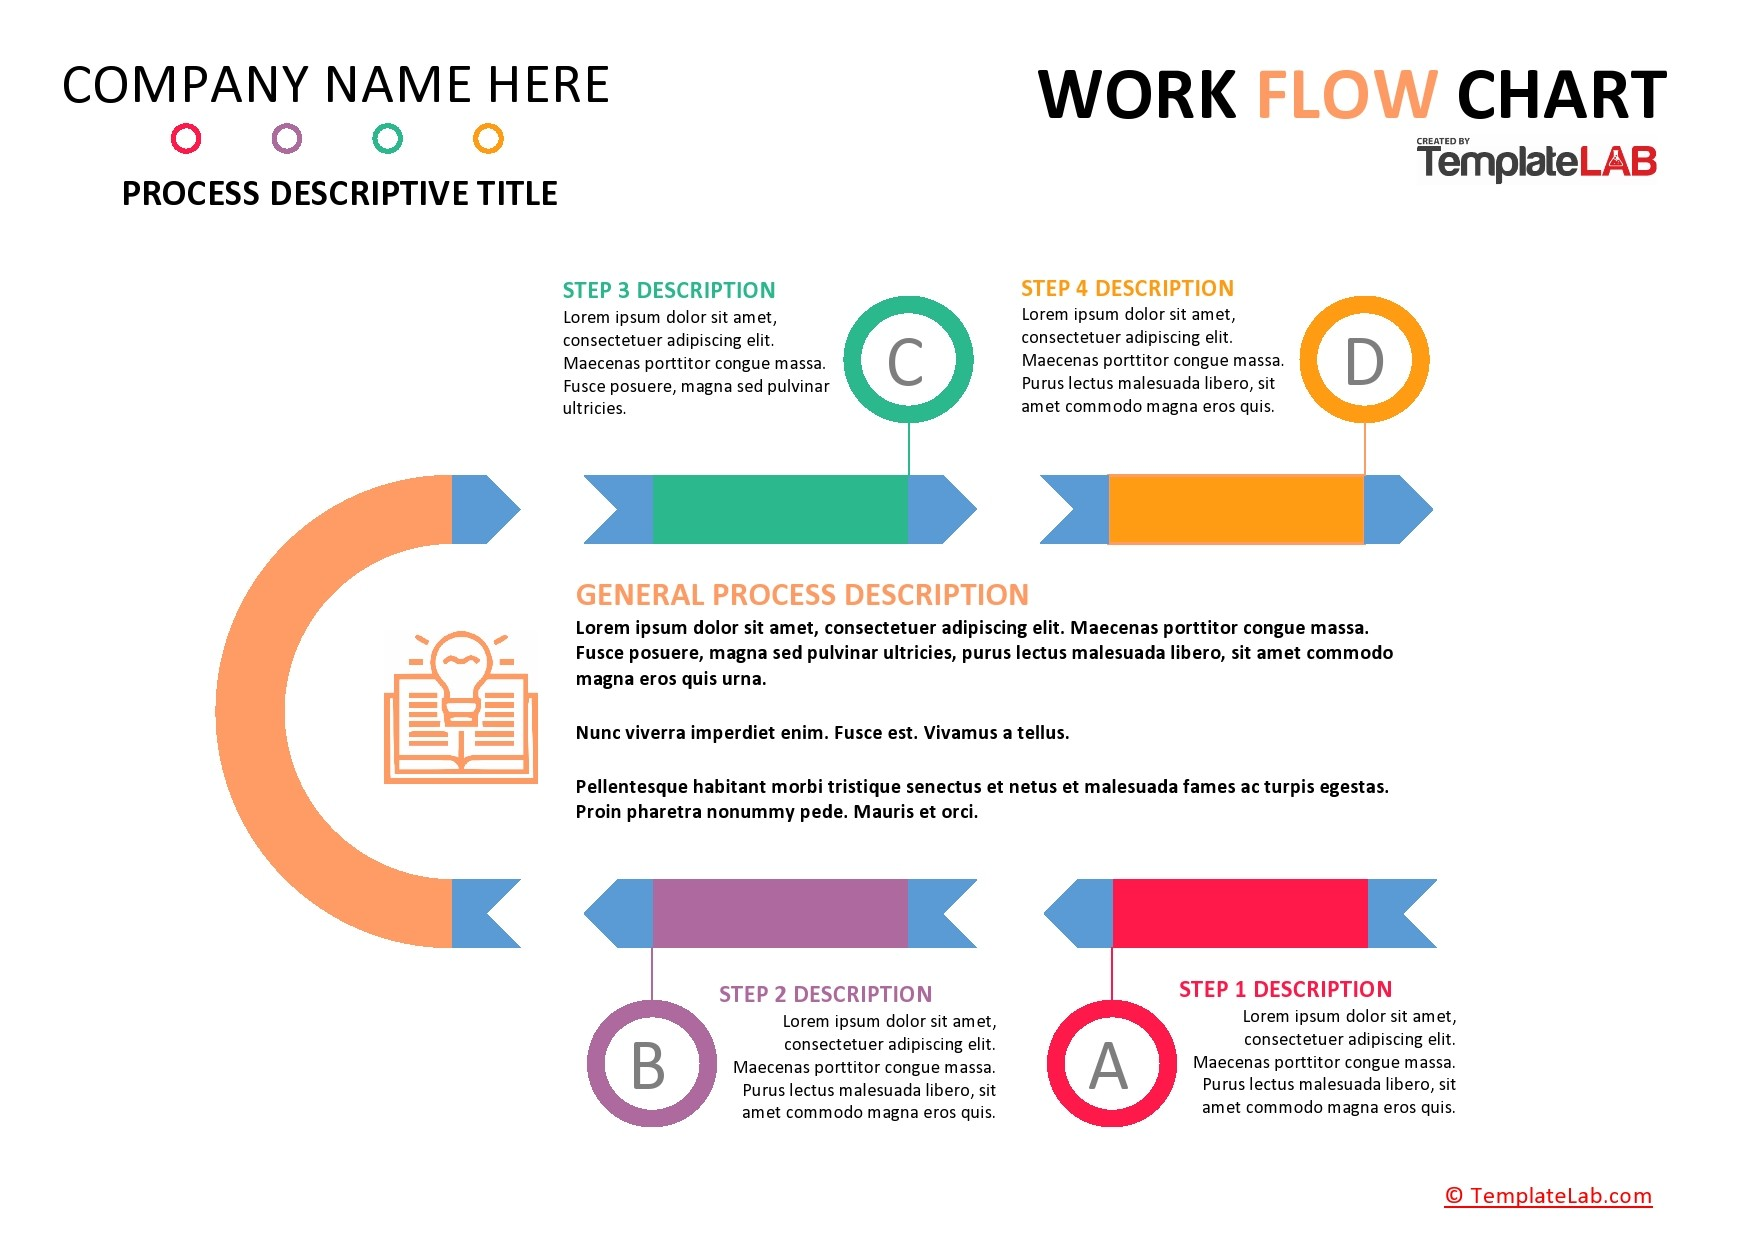 Free Work Flow Chart Template